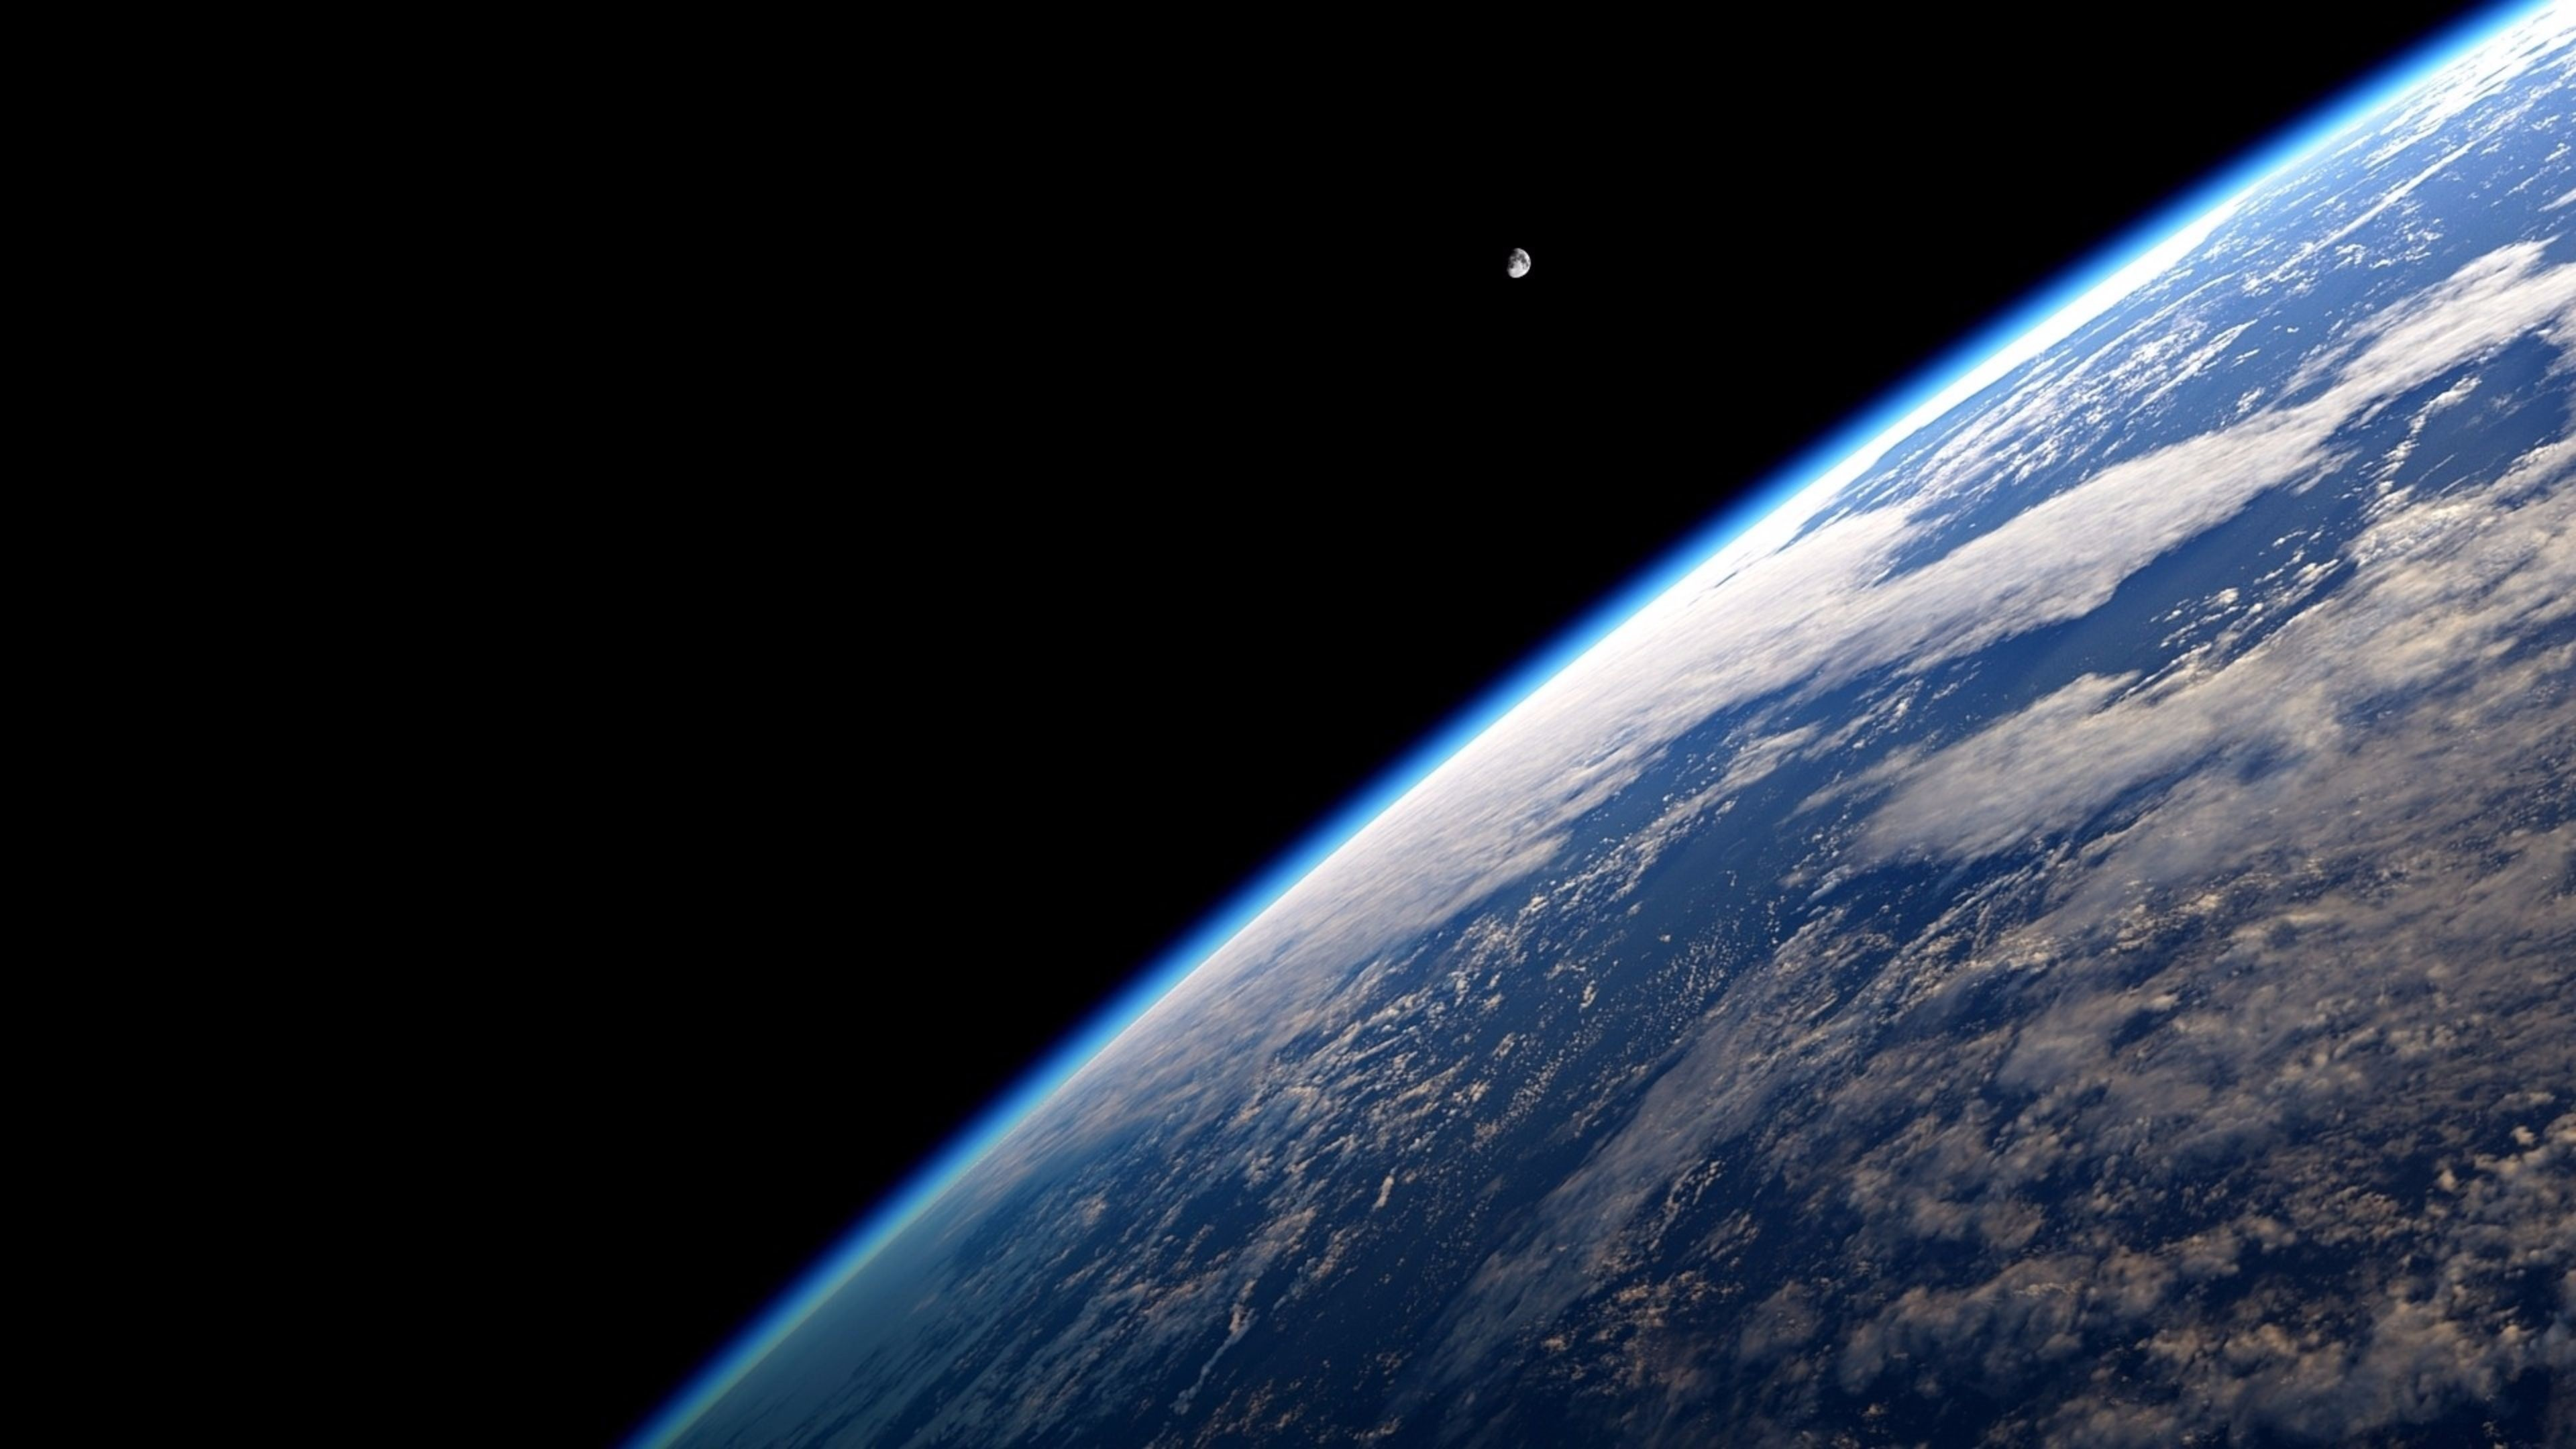 3840x2160 Wallpaper backgrounds · [1920x1080] Edge Of Earth From Space Need #iPhone  #6S #Plus #